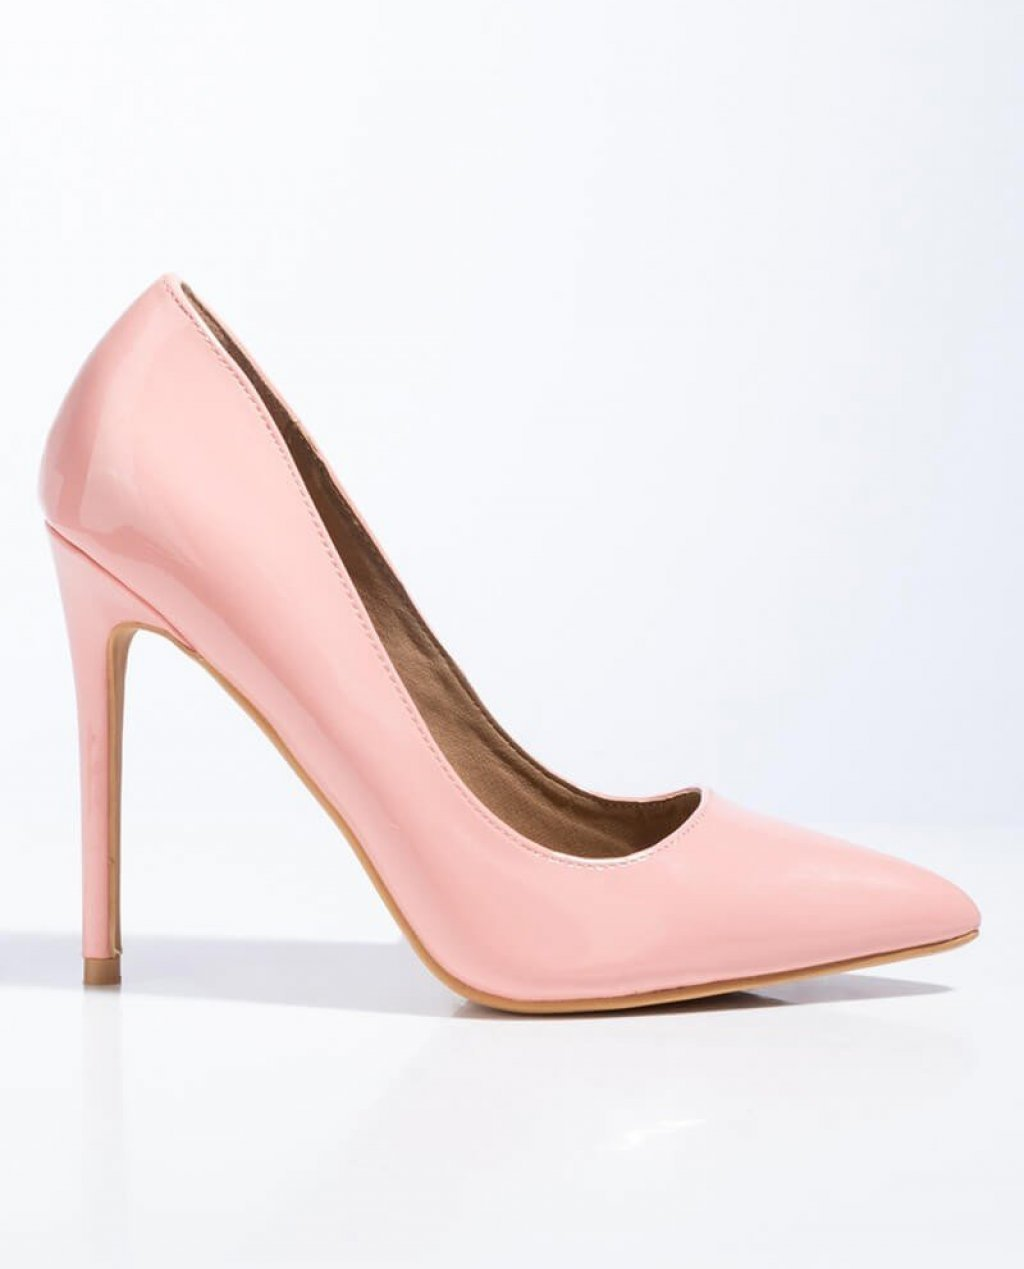 The Dream Girl Stiletto Pump